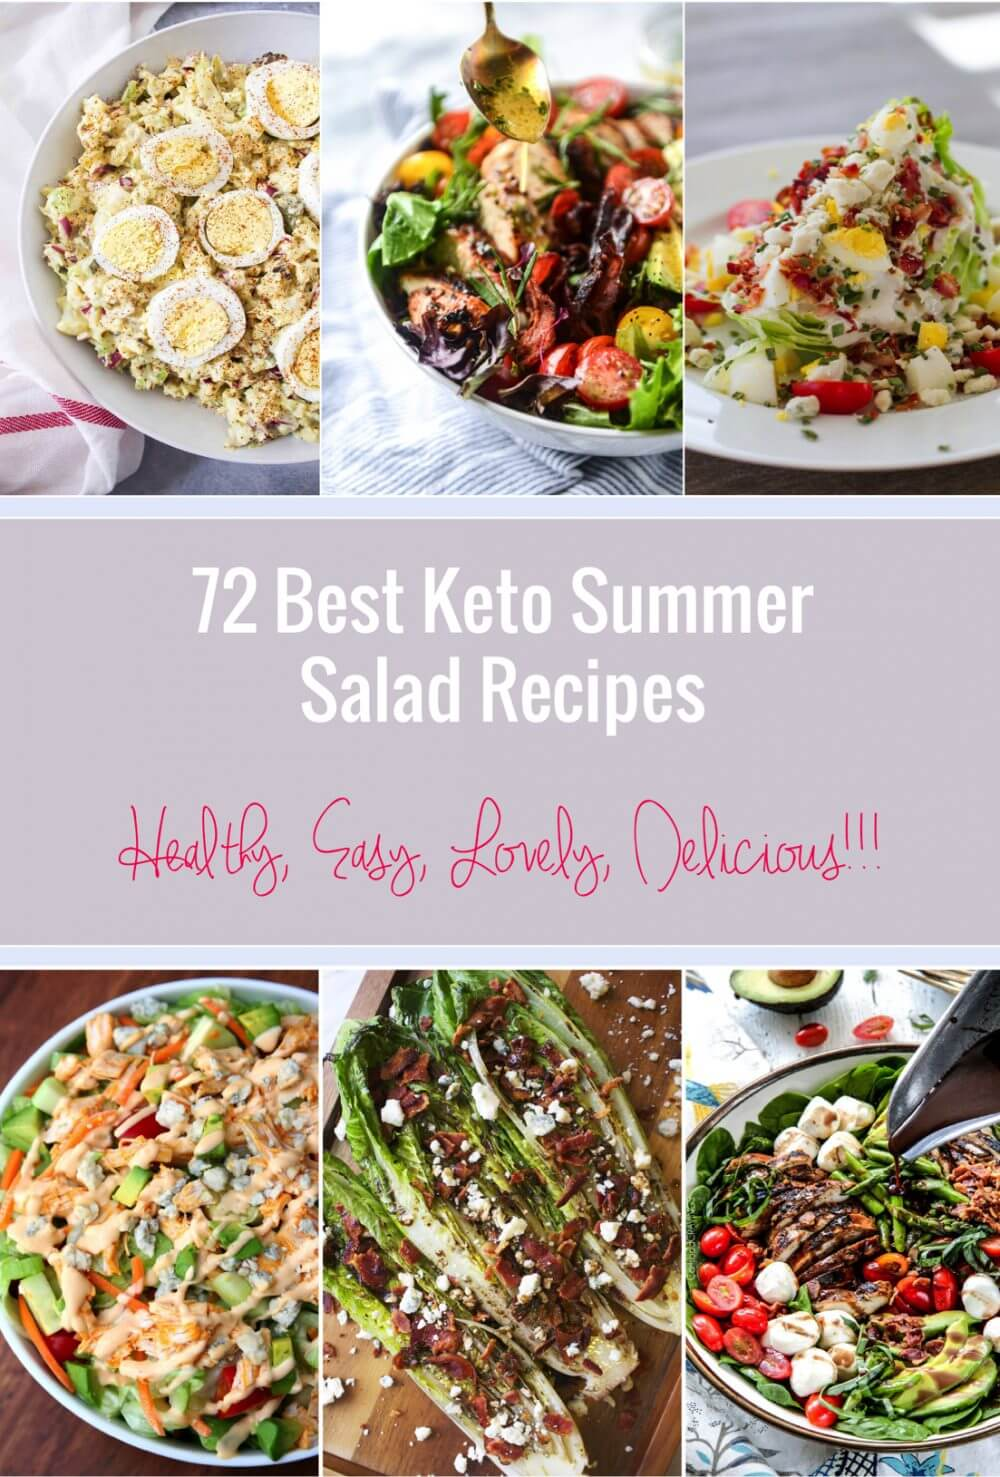 Here are the 72 Best Keto Summer Salad Recipes for all your low carb picnic and BBQ needs!